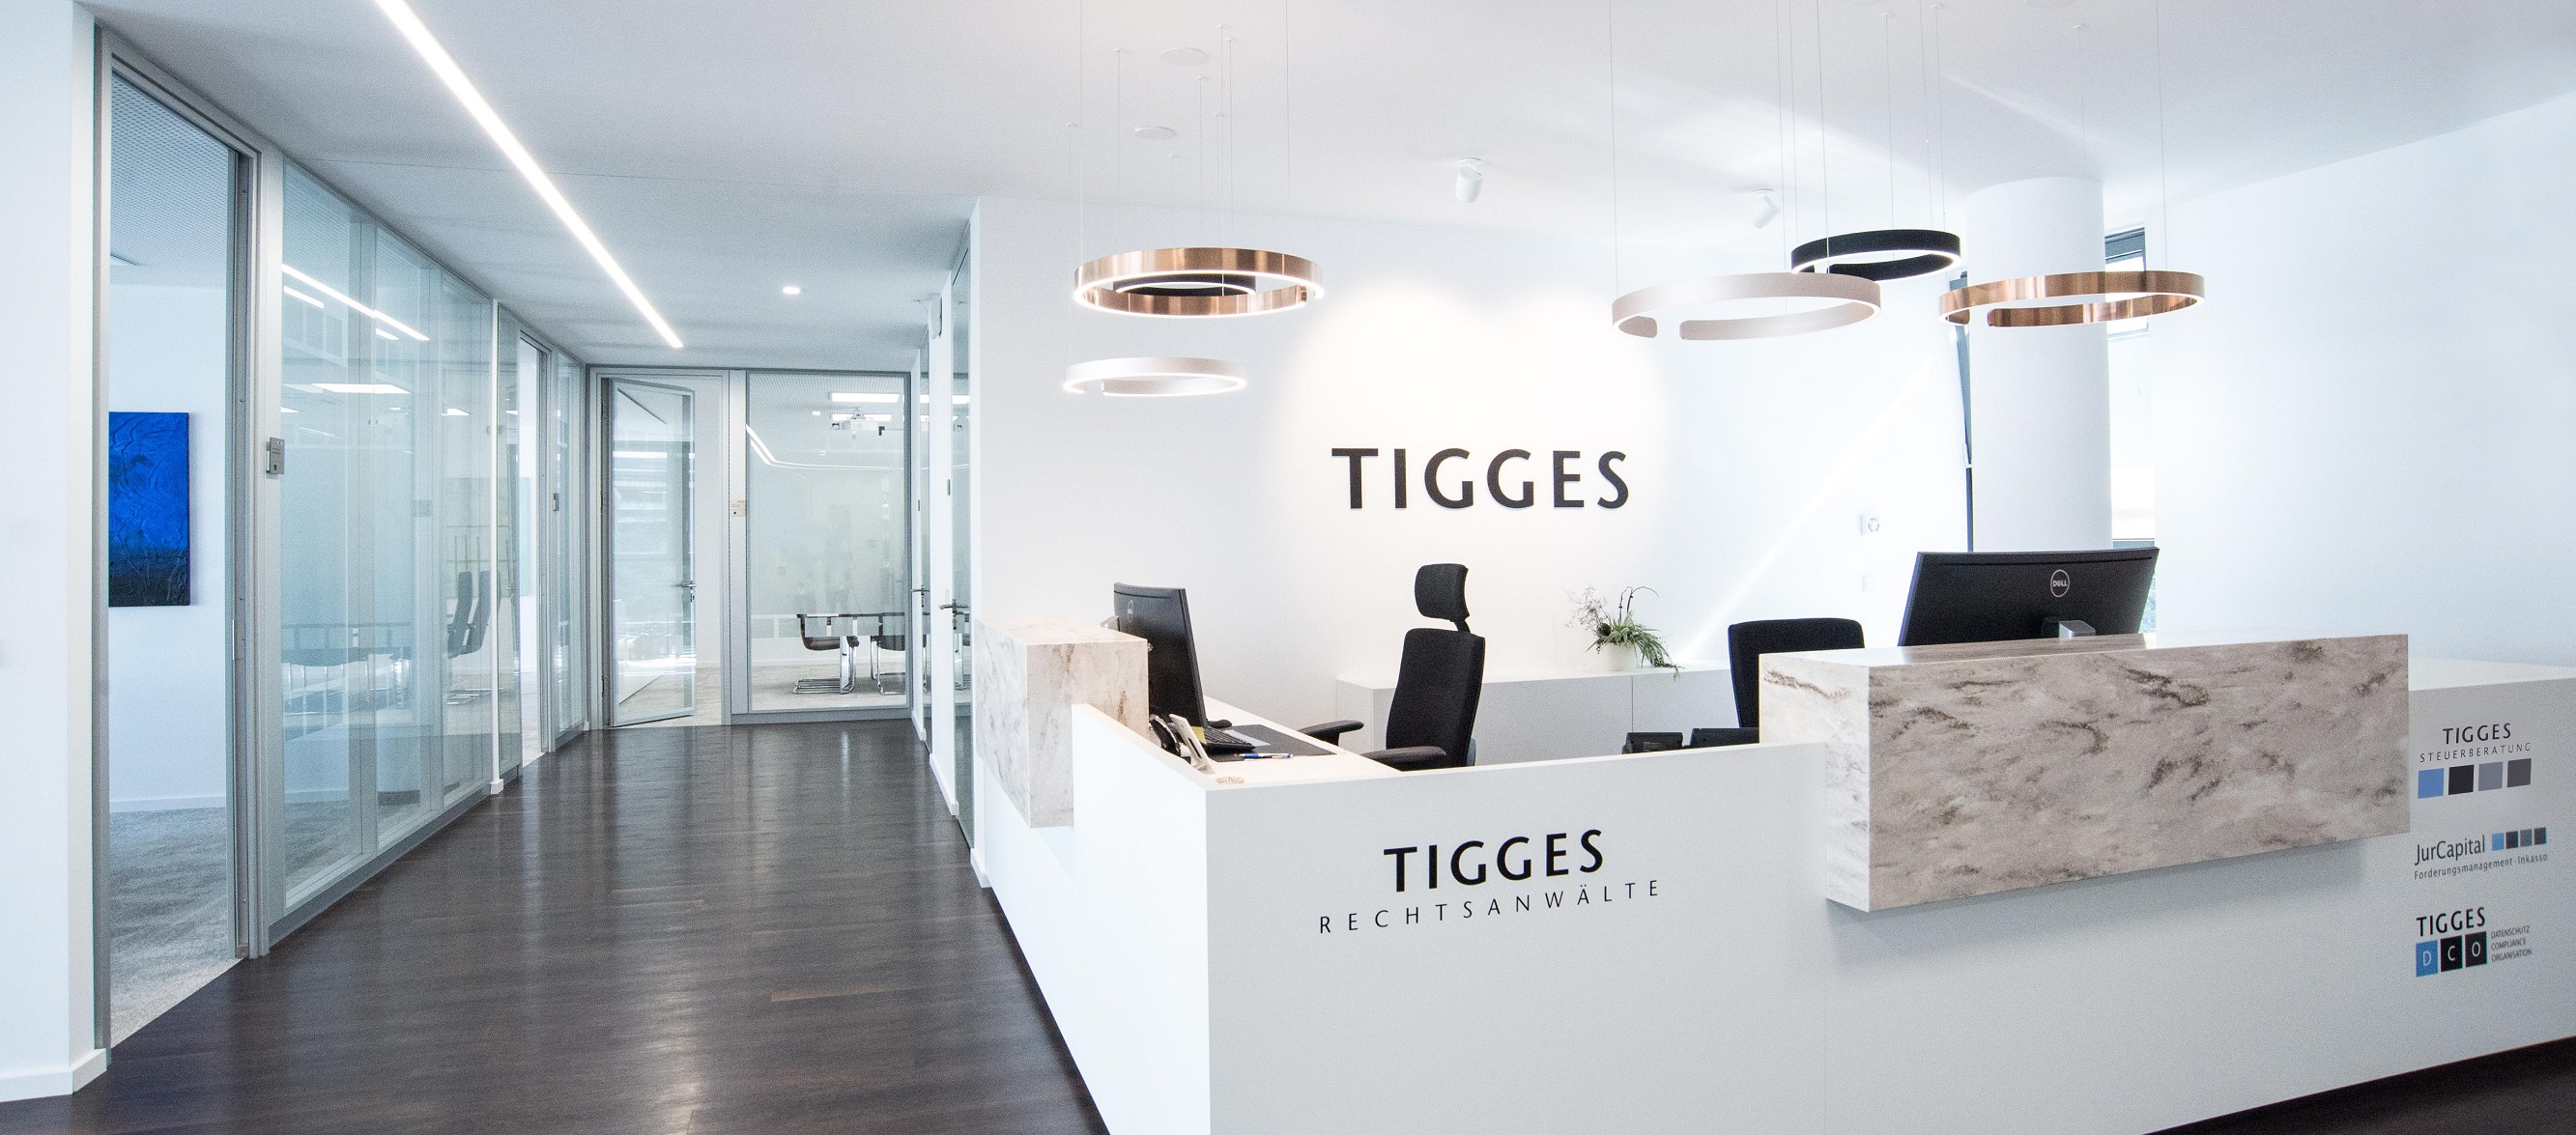 TIGGES start page entrance